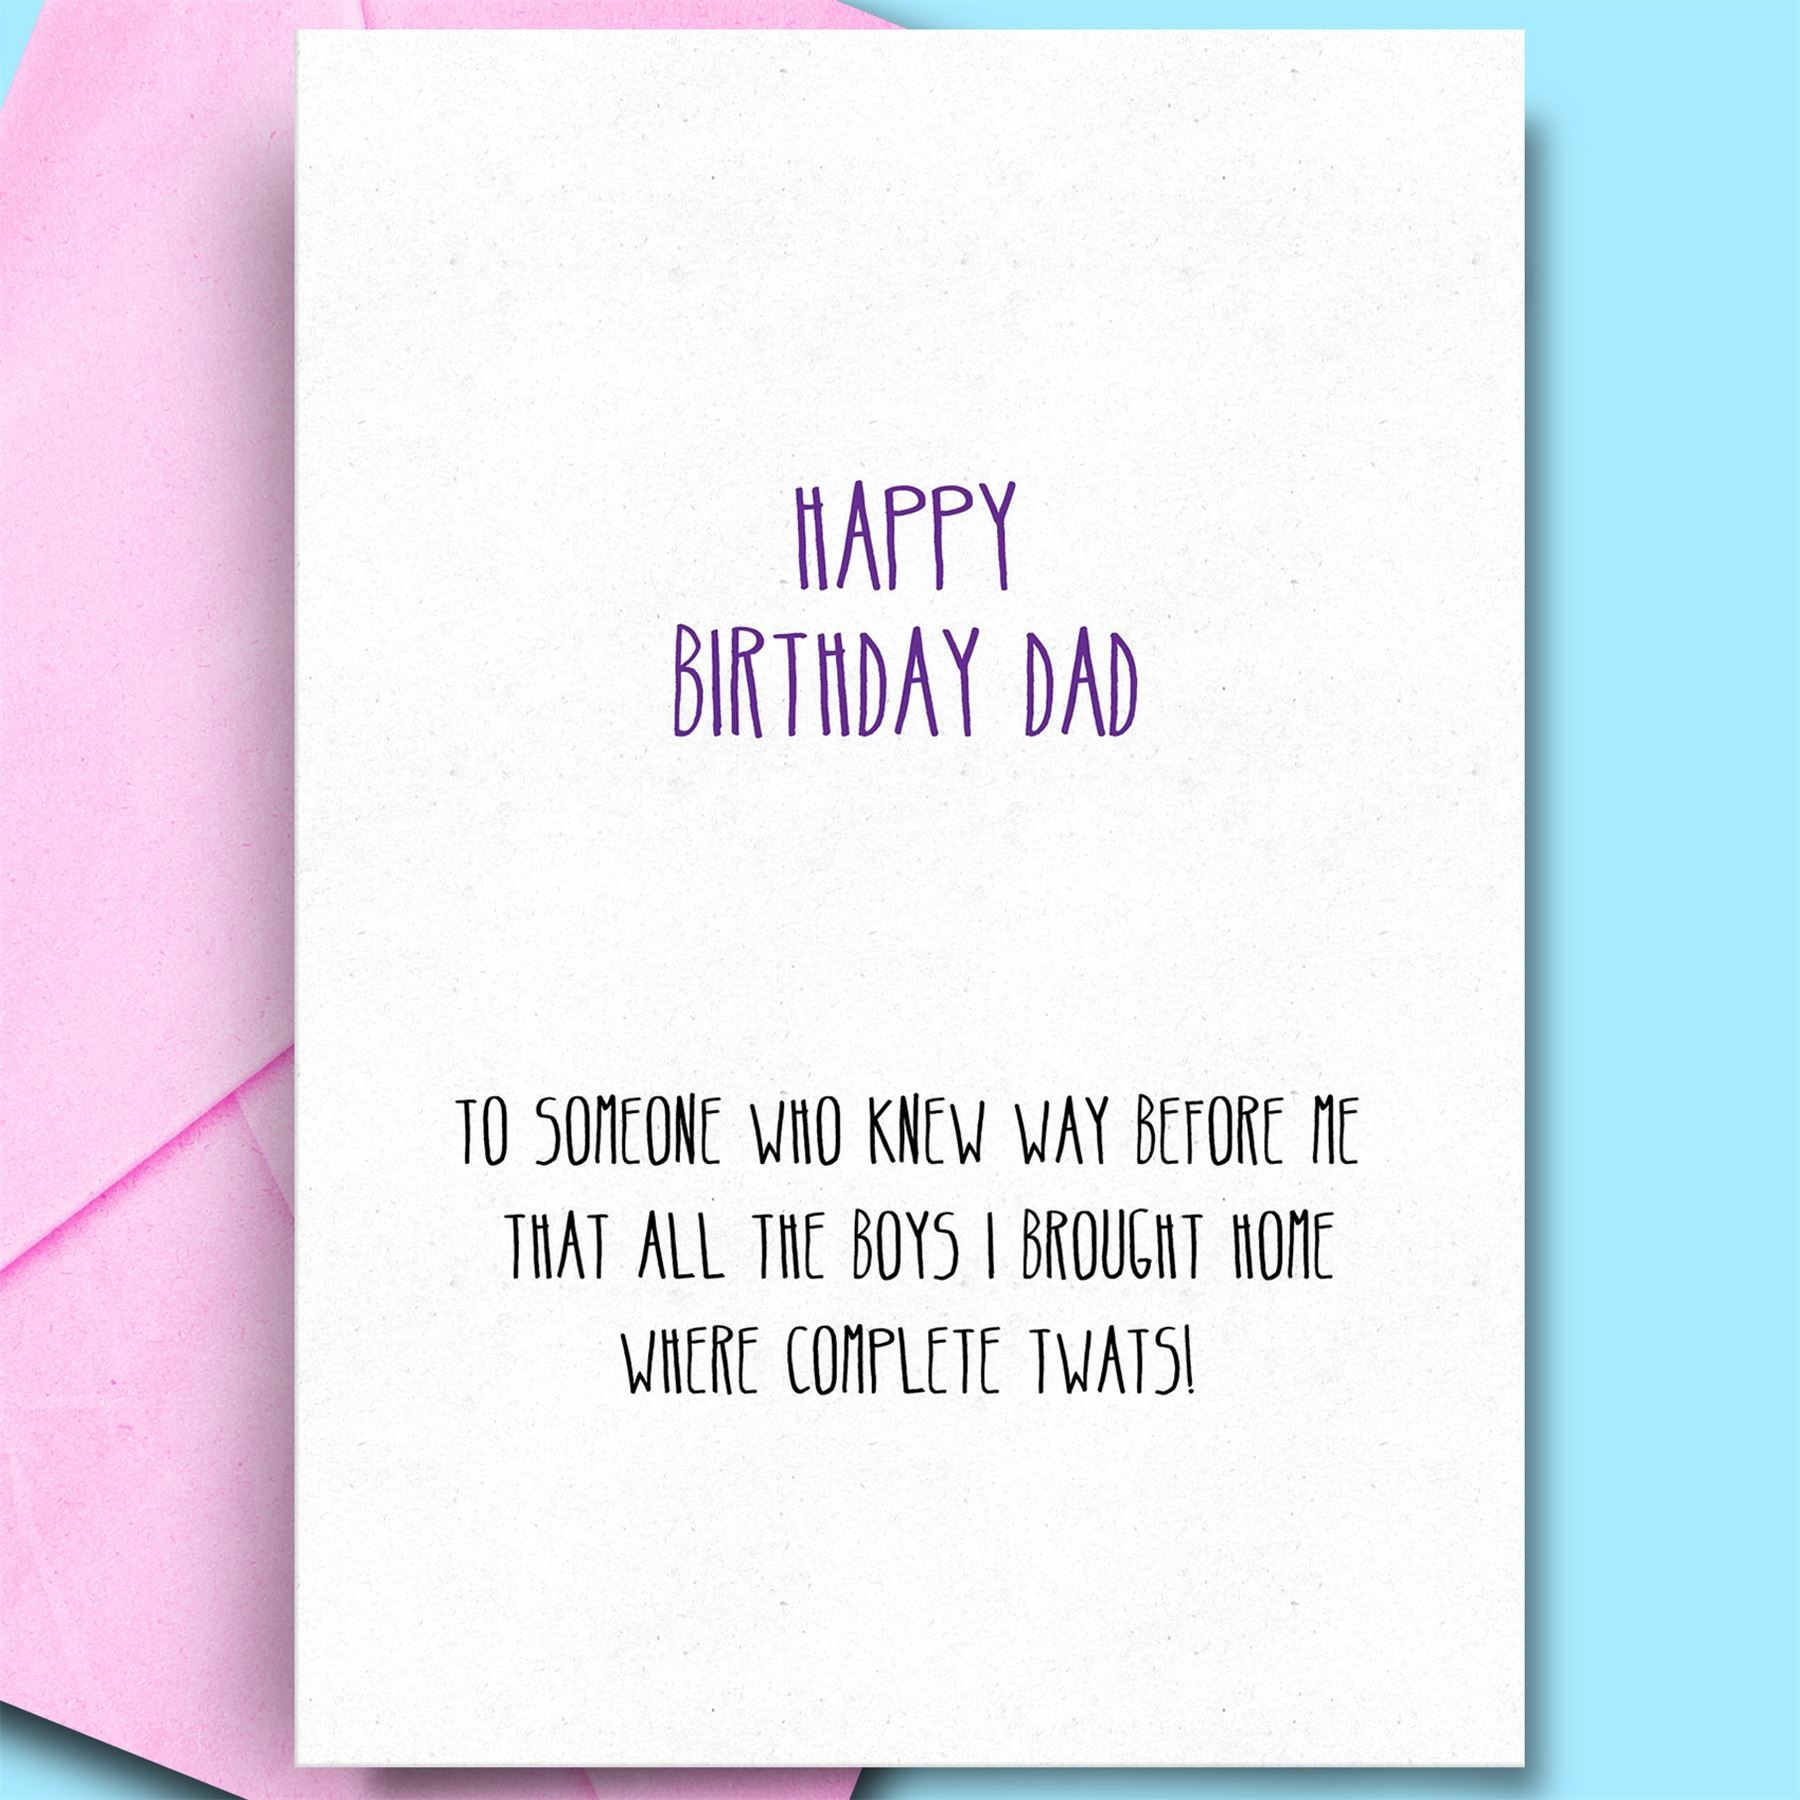 Birthday Wishes For Father From Daughter  Birthday Wishes For Father From Daughter Son Funny Rude